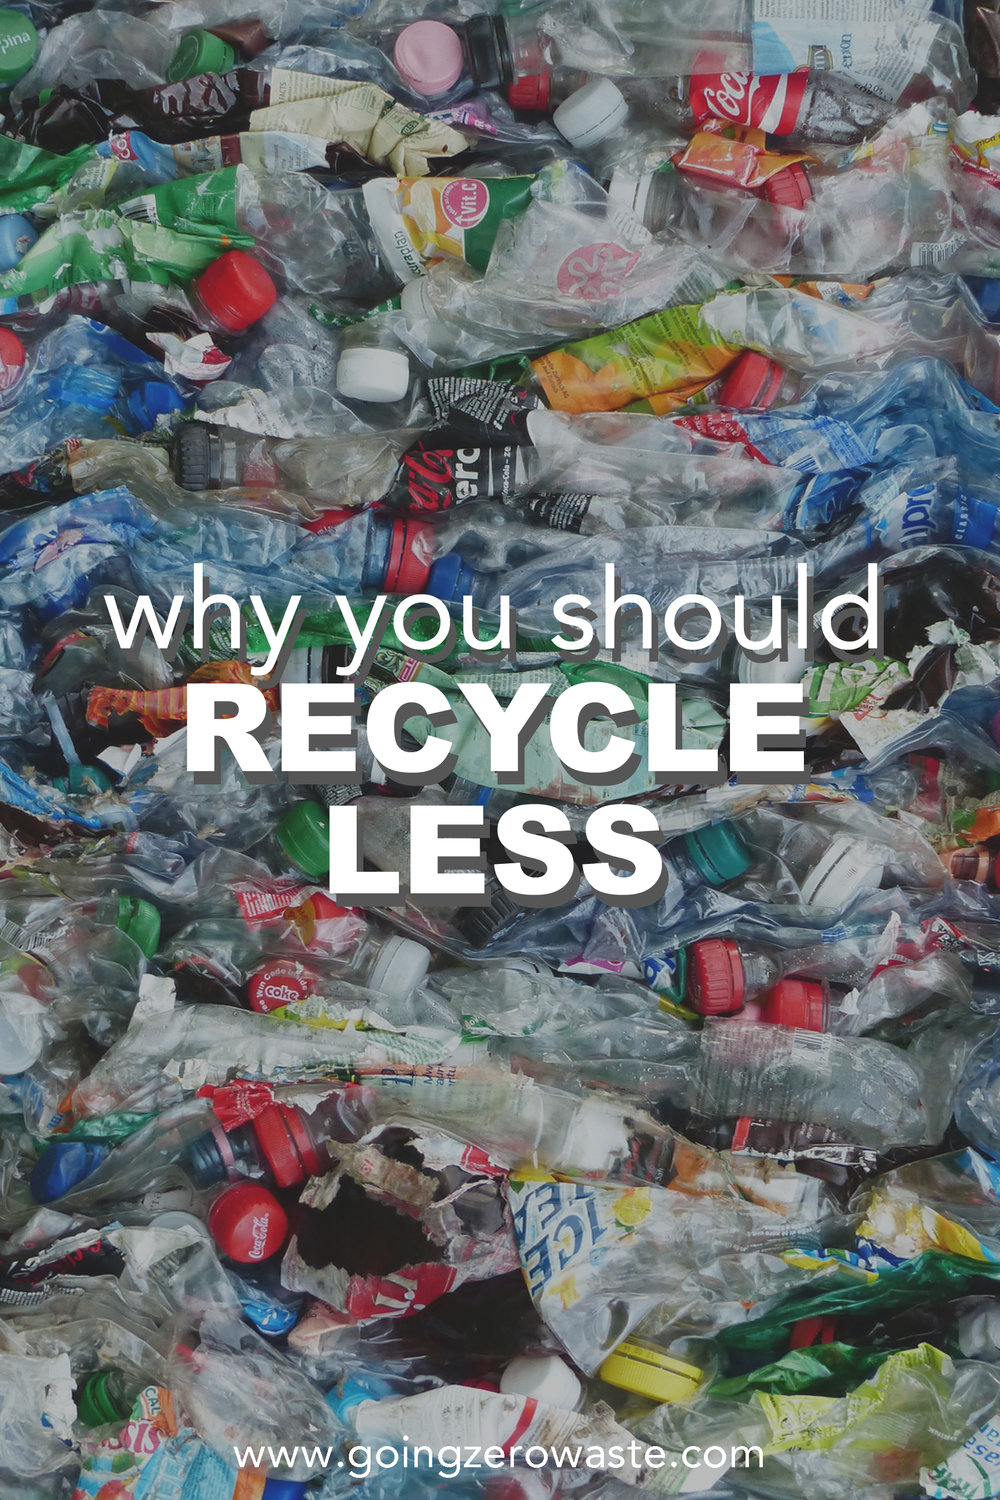 Why you should recycle less from www.goingzerowaste.com